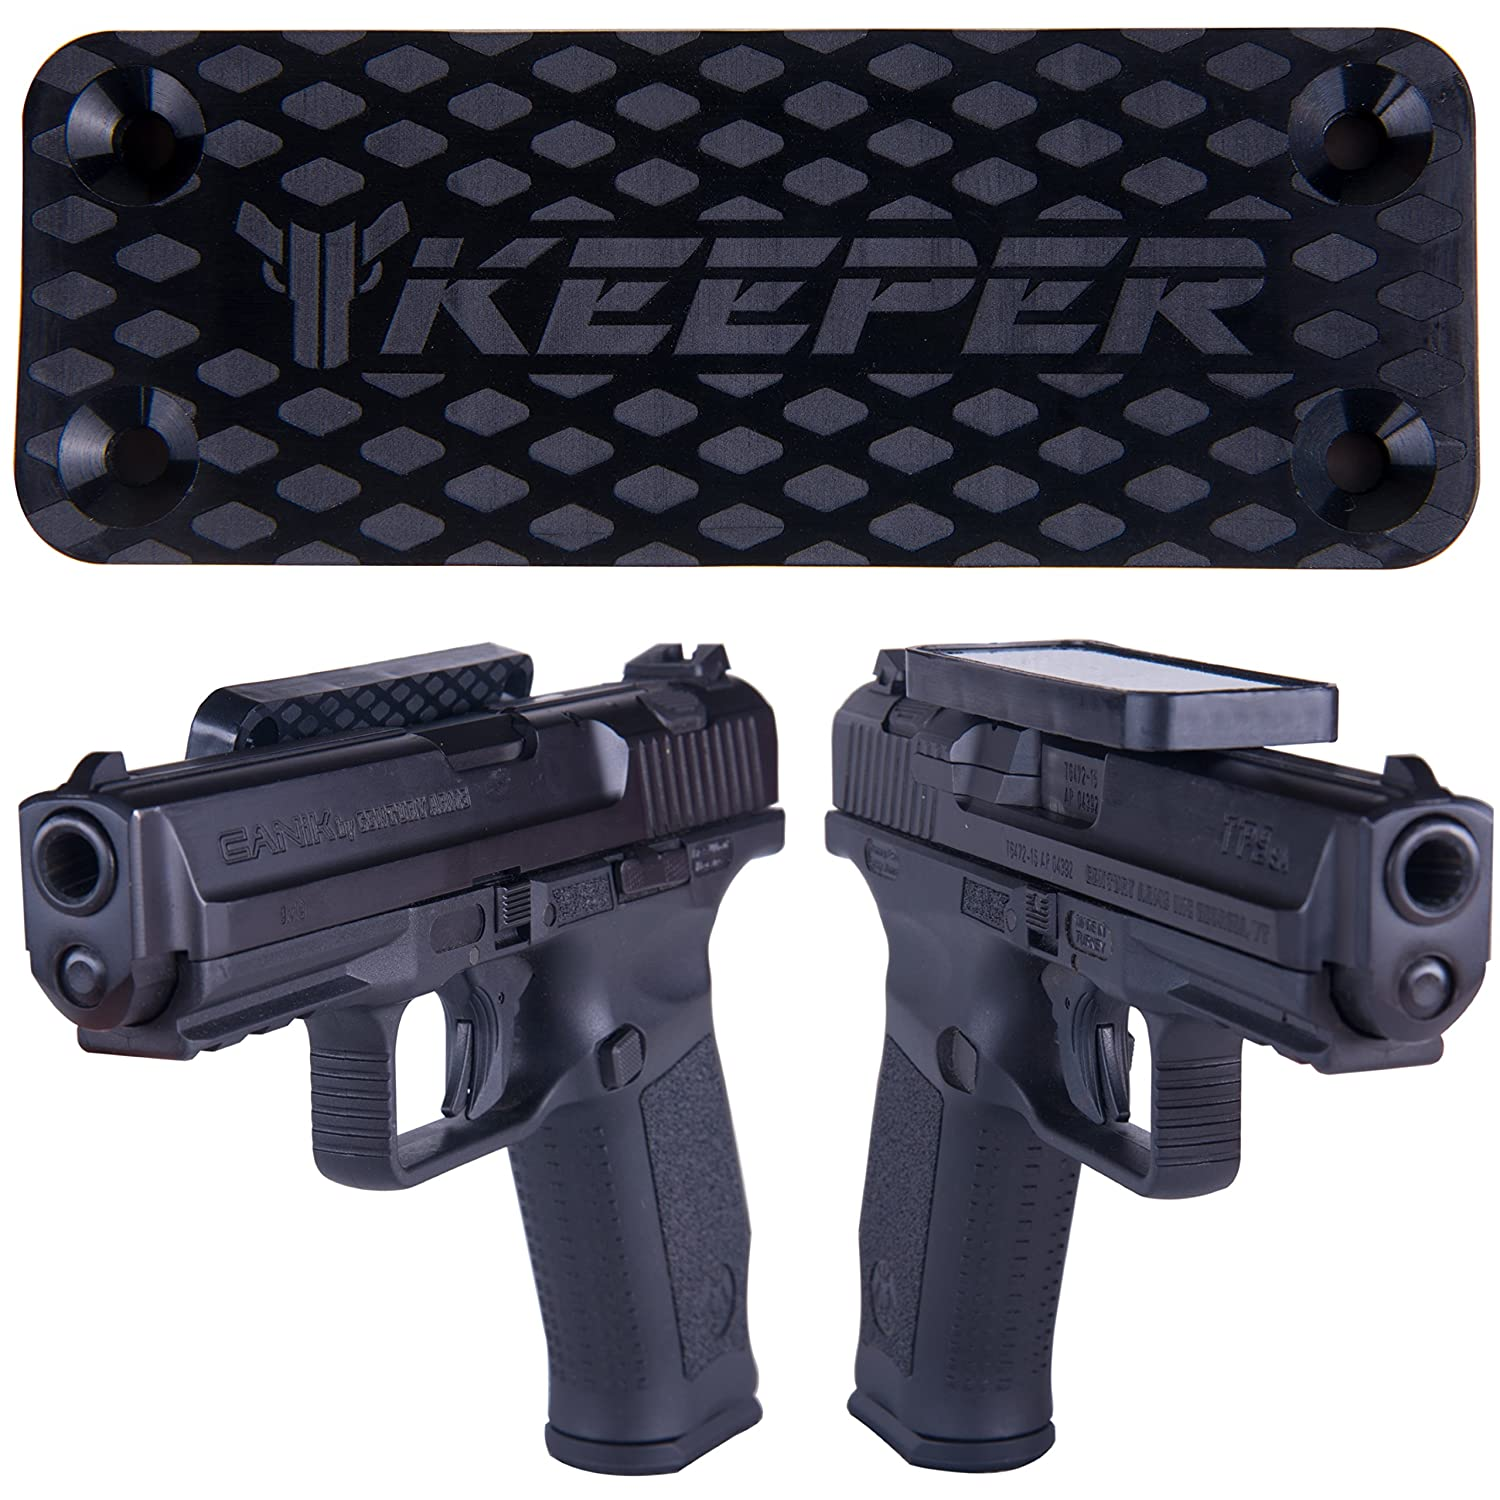 Magnetic Gun Mount & Holster For Vehicle And Home - HQ Rubber Coated 35 Lbs Rated - Firearm Accessory. Concealed Holder For Handgun, Rifle, Shotgun, Pistol, Revolver, Truck, Car, Wall, Vault, Desk. KEEPER MG OC-68768